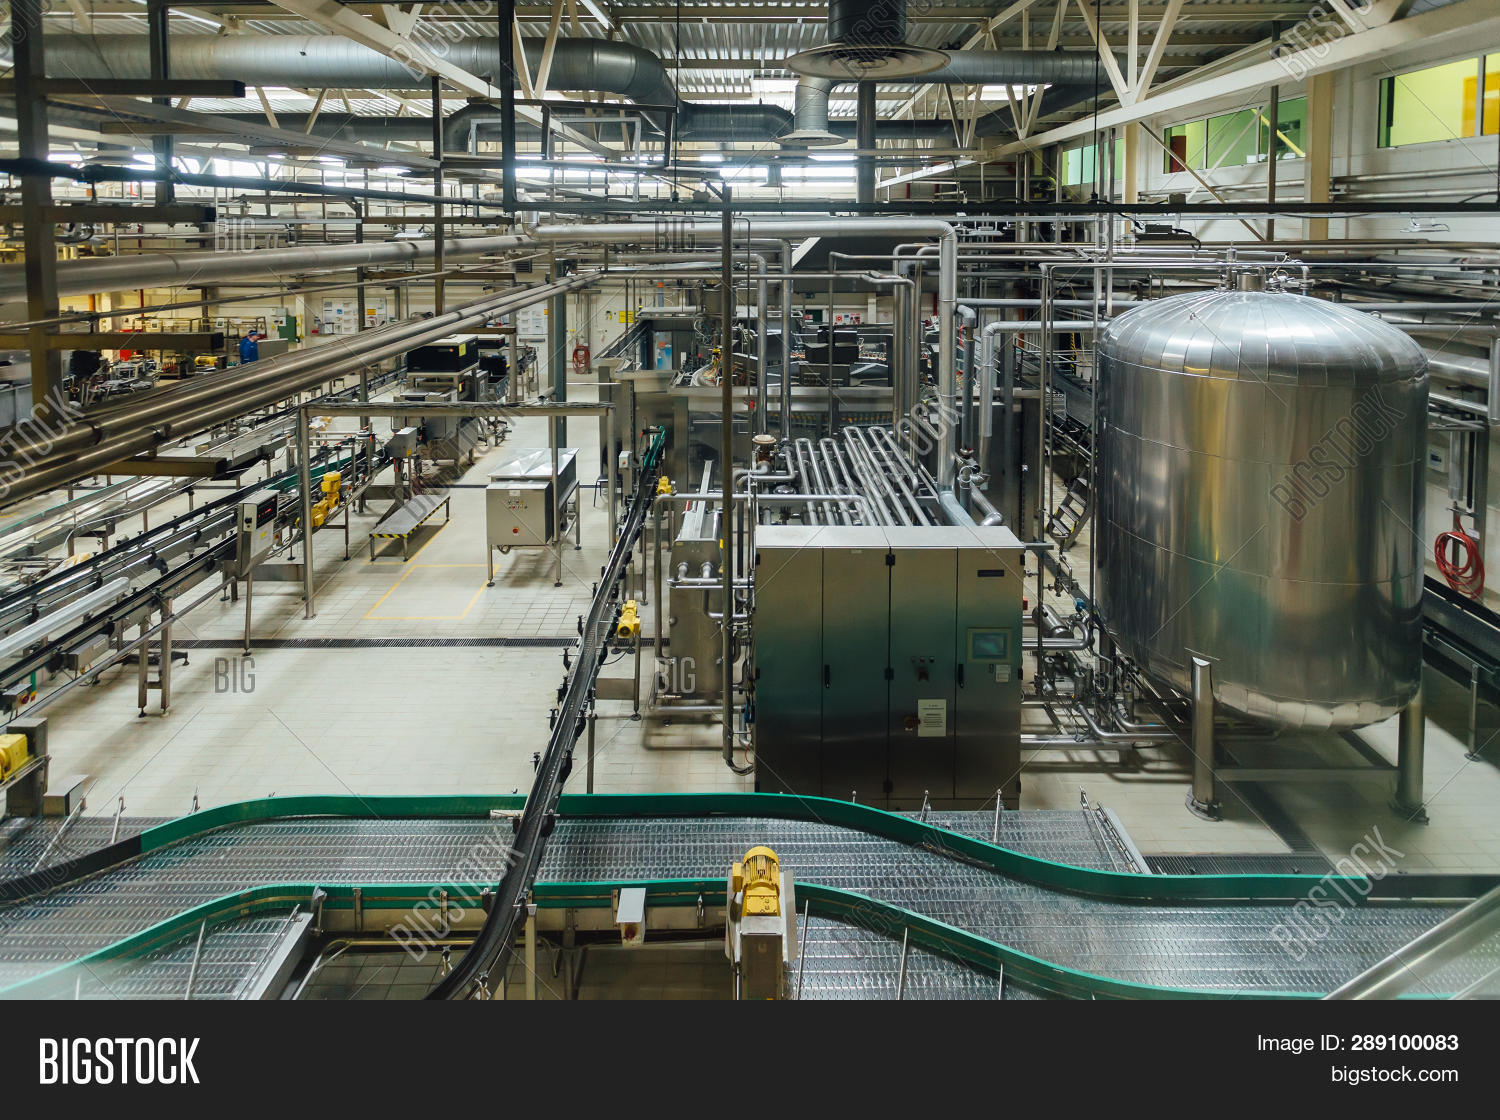 Modern Brewery Image & Photo (Free Trial) | Bigstock